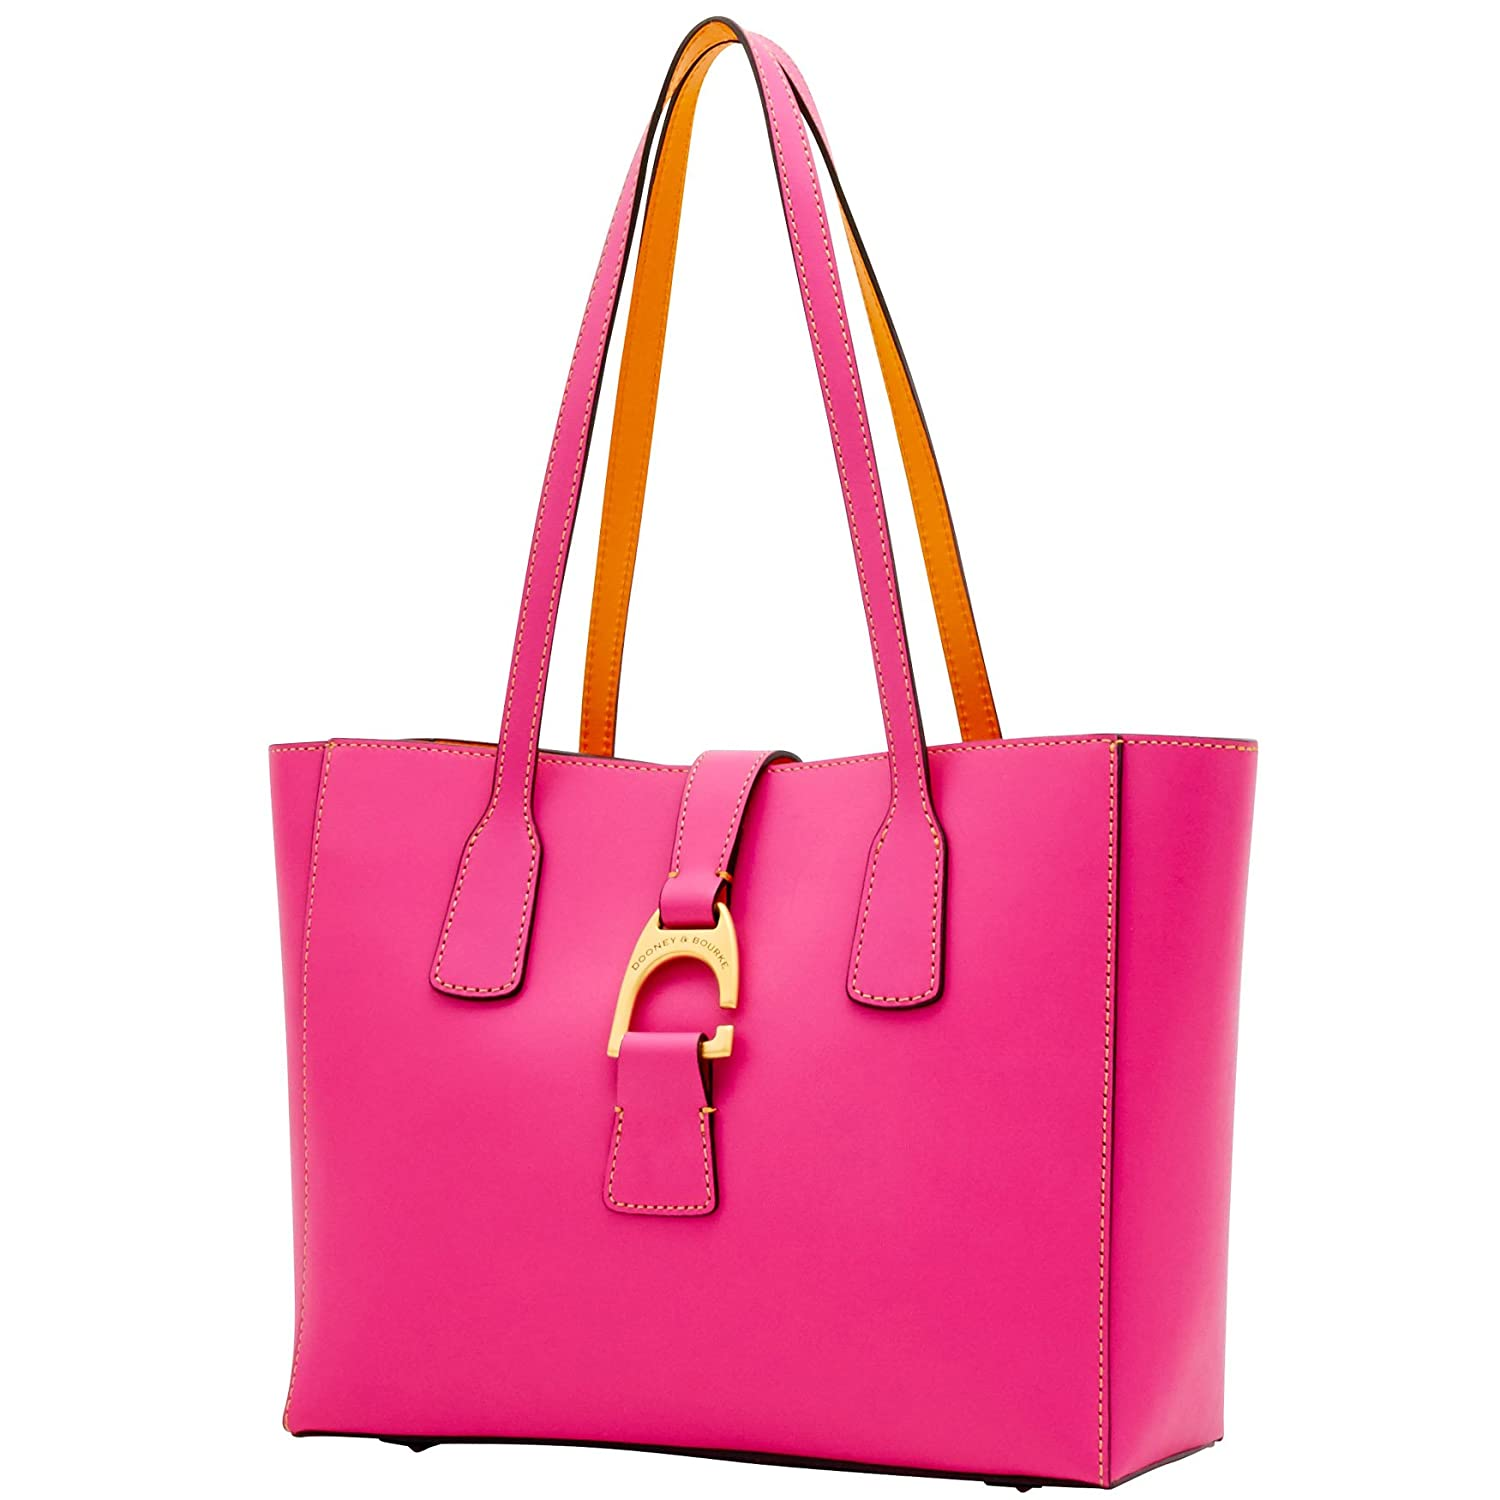 d73baa7c9ad3 Dooney   Bourke Emerson Small Shannon Tote Fuchsia  Amazon.in  Shoes    Handbags